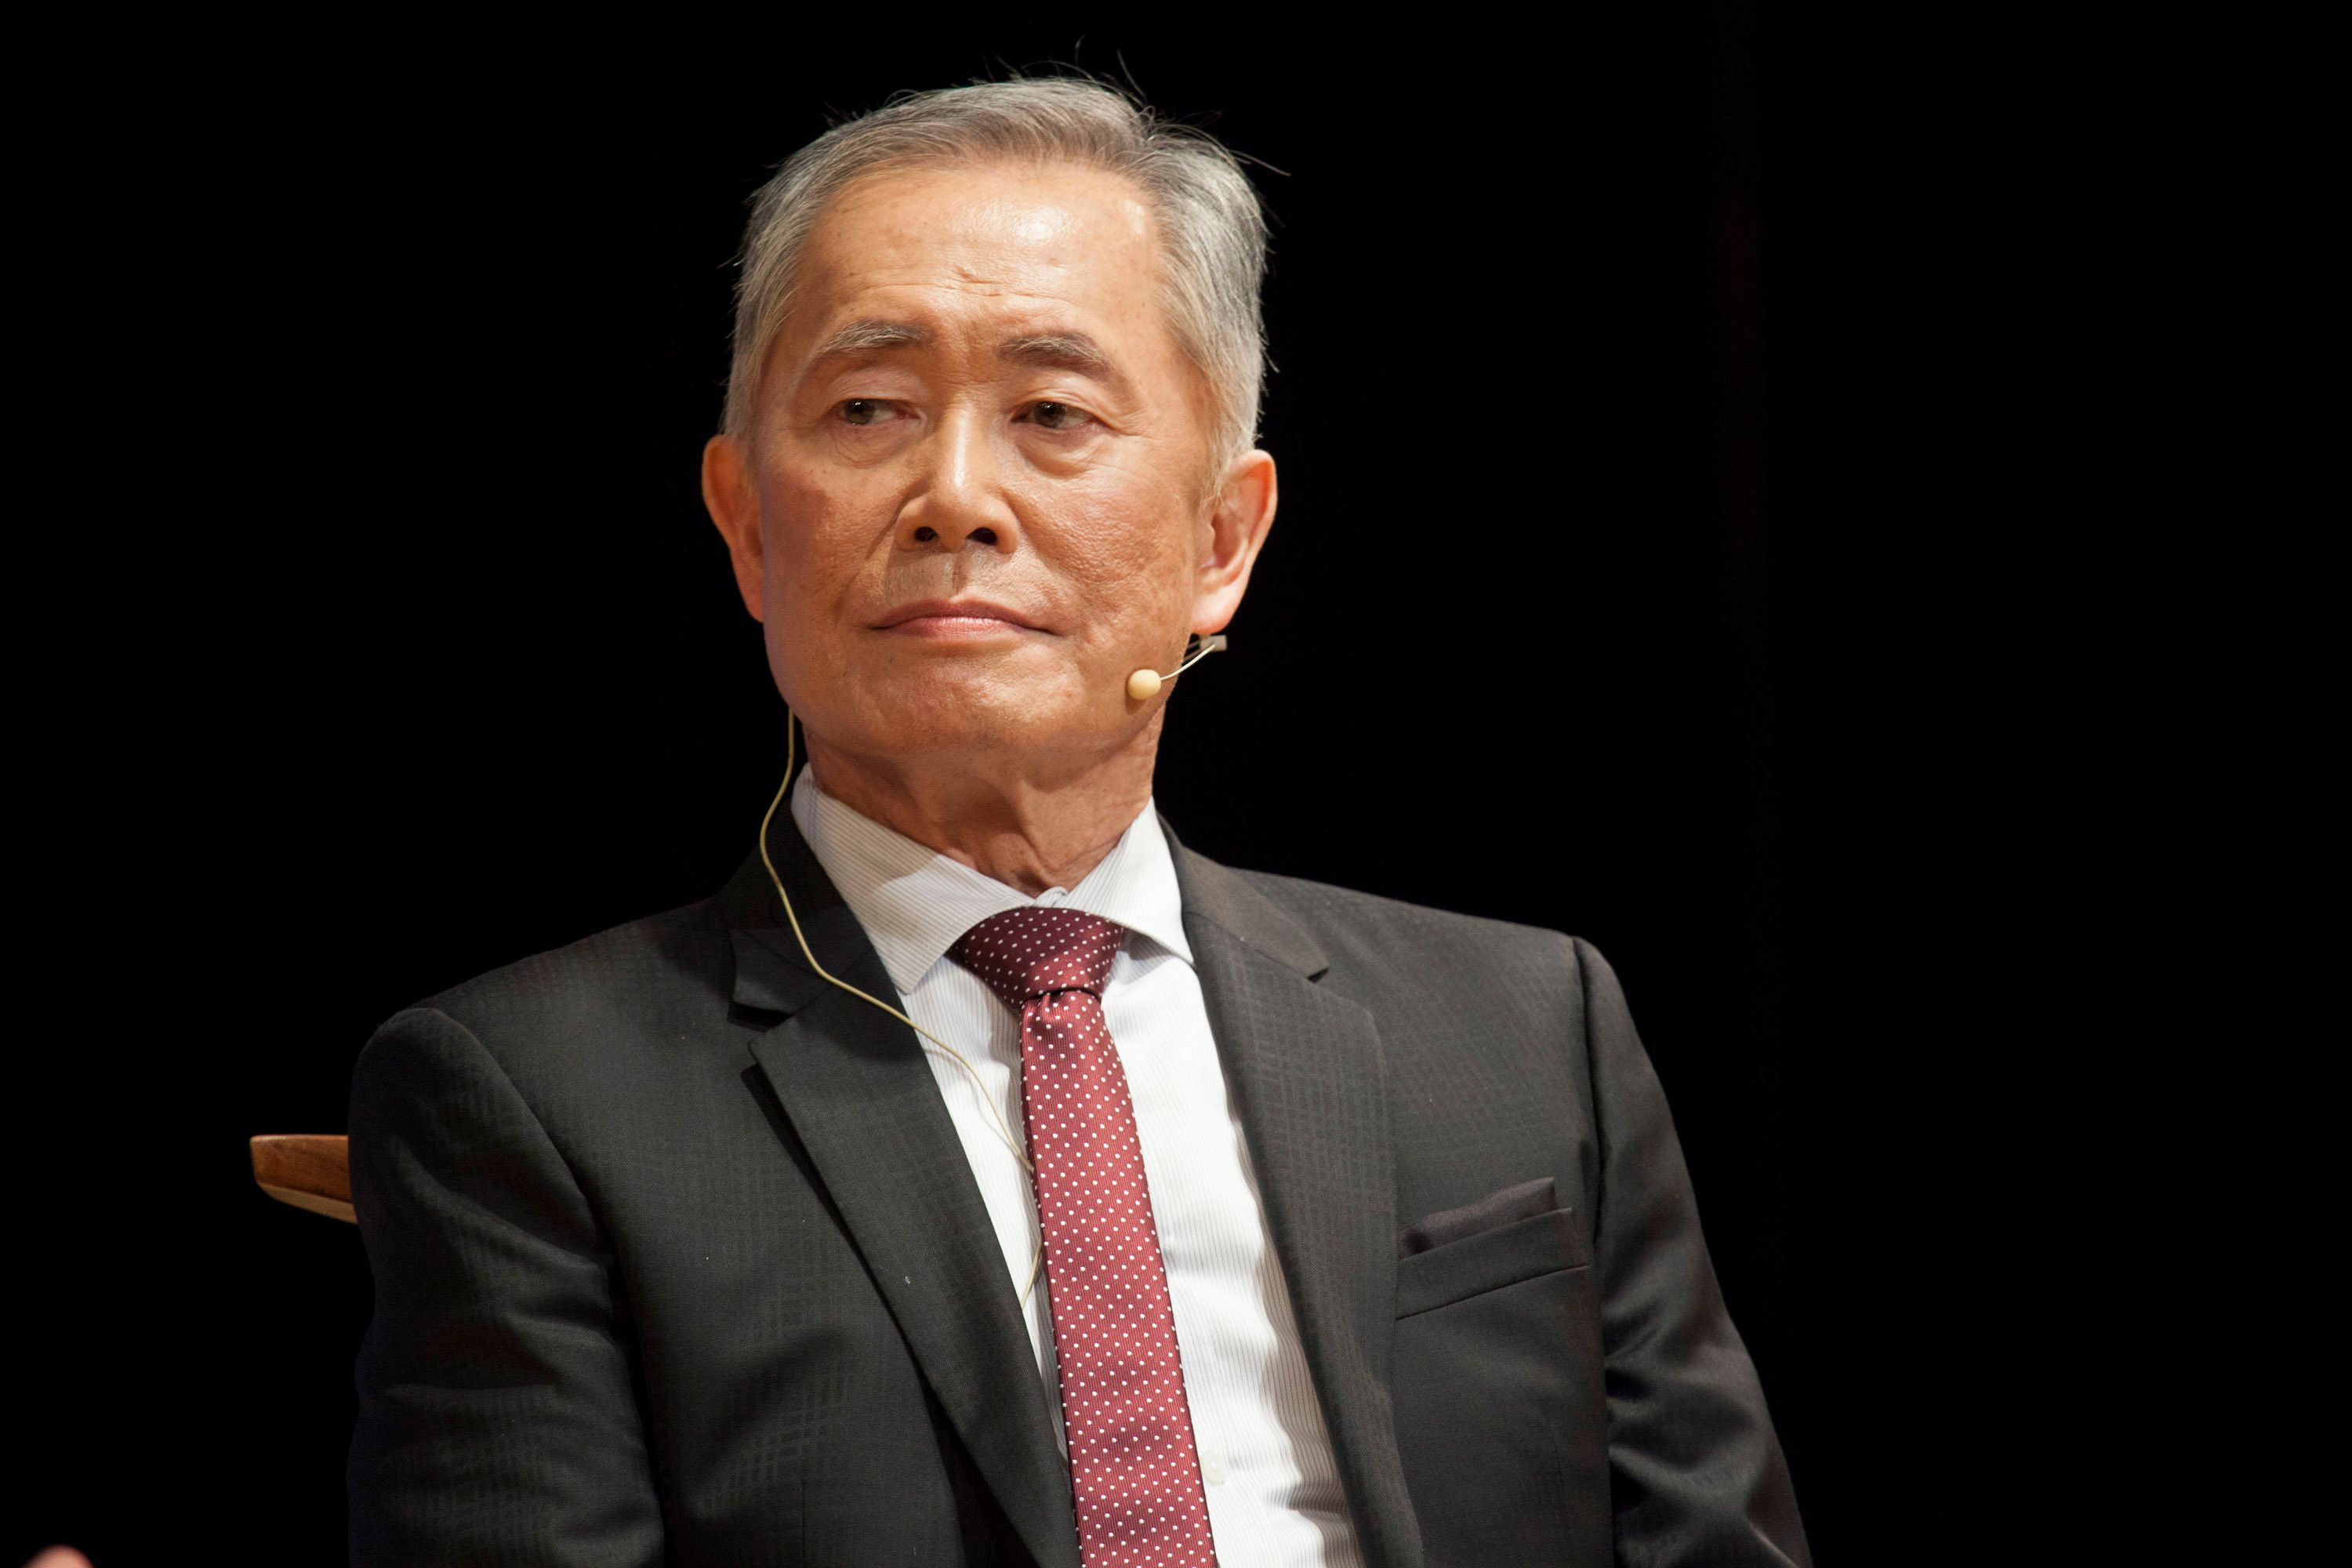 NEW YORK, NY - JANUARY 25:  George Takei speaks during 'George Takei: From Barbed Wire To Broadway In Conversation' at Japan Society on January 25, 2016 in New York City.  (Photo by Santiago Felipe/Getty Images)